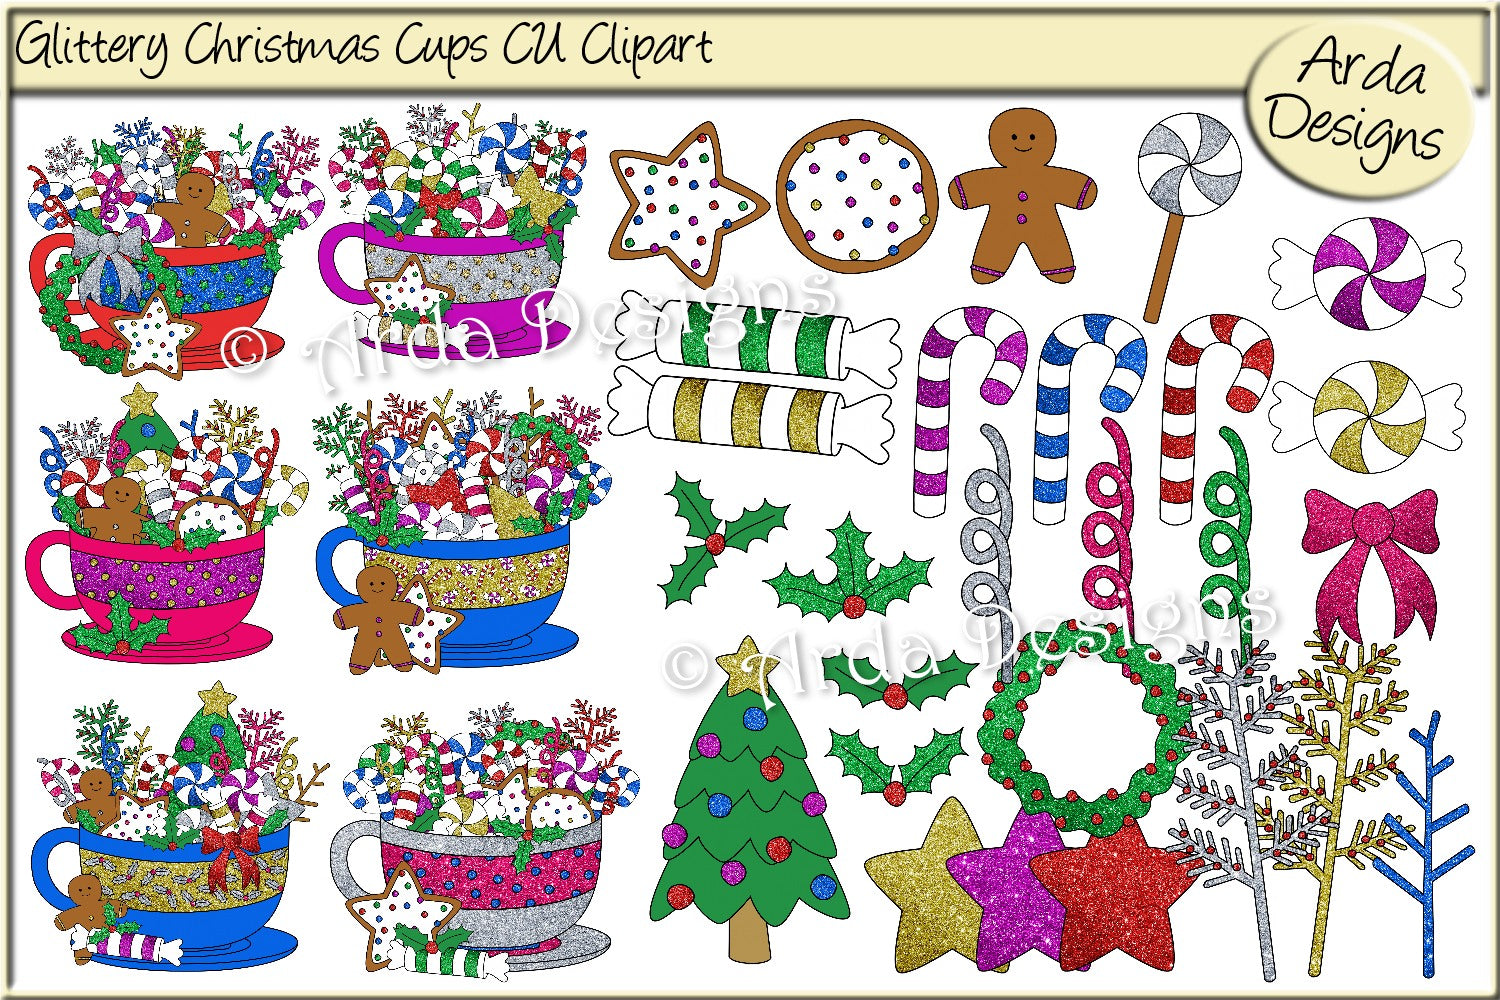 Glittered Christmas Cups CU Clipart